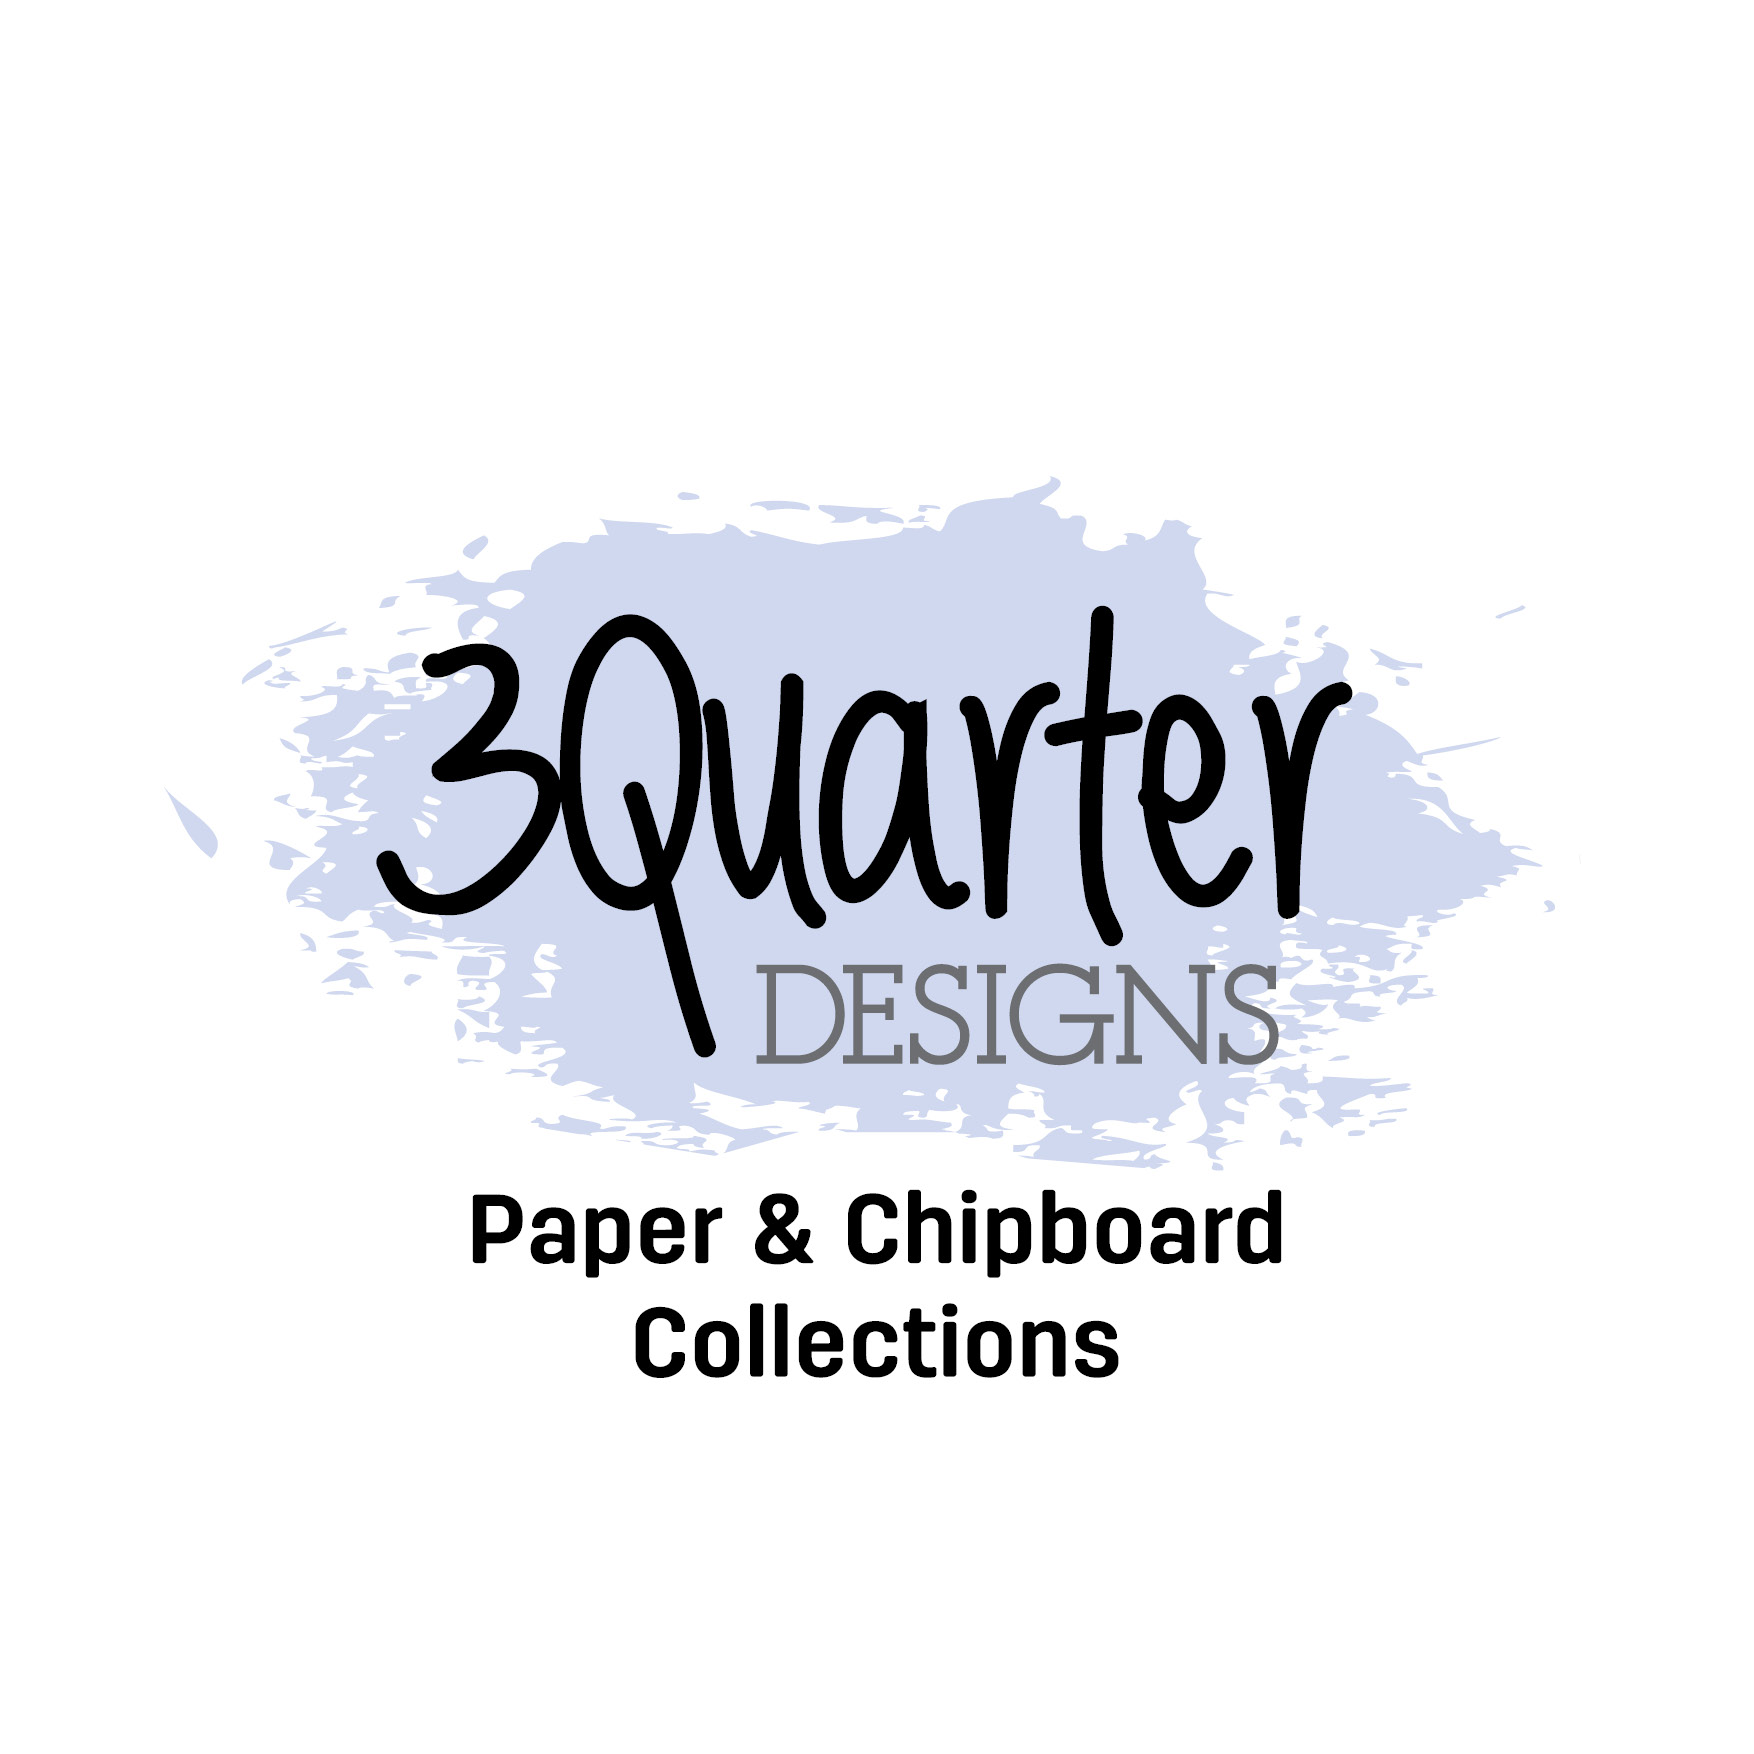 3quarter-designs-square-stacked.jpg